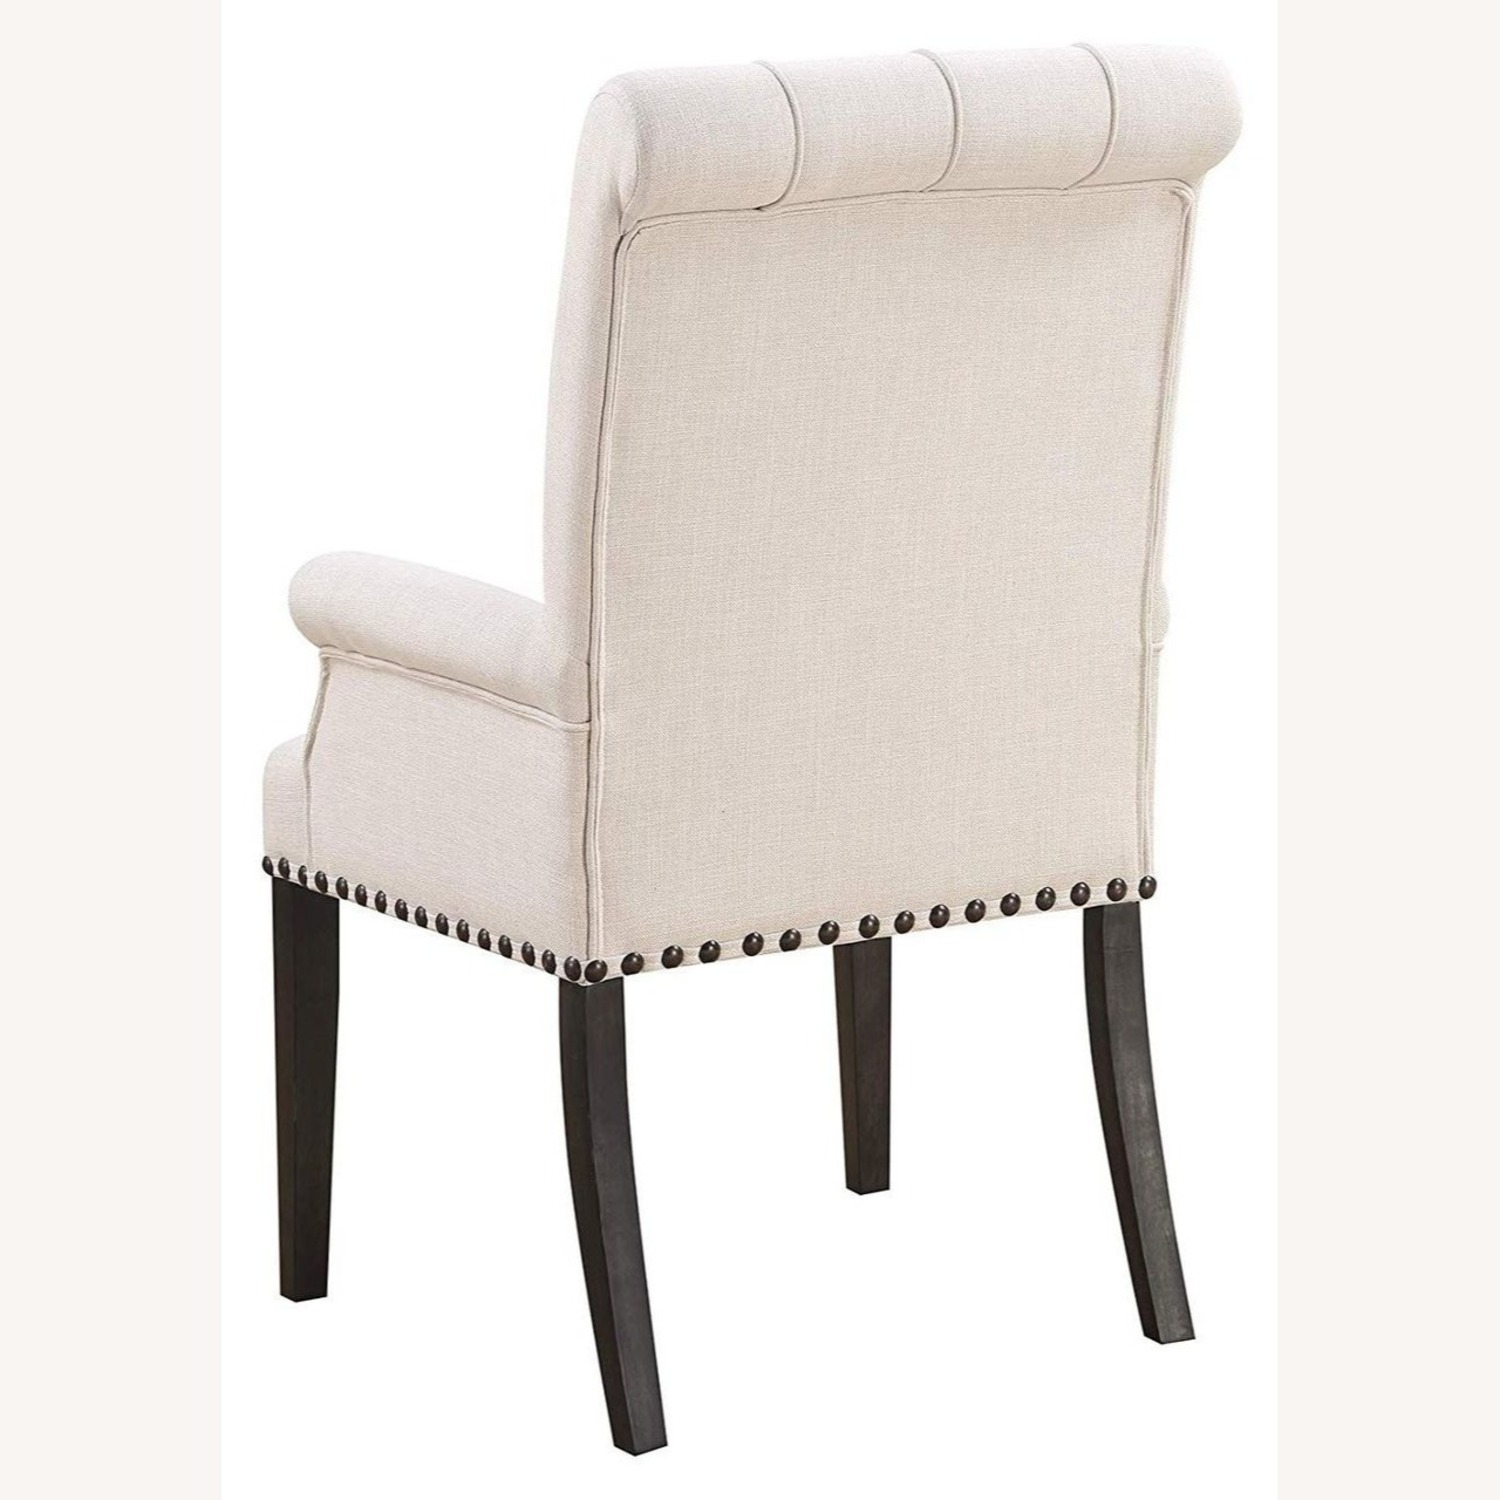 Modern Arm Chair In Beige Fabric - image-2